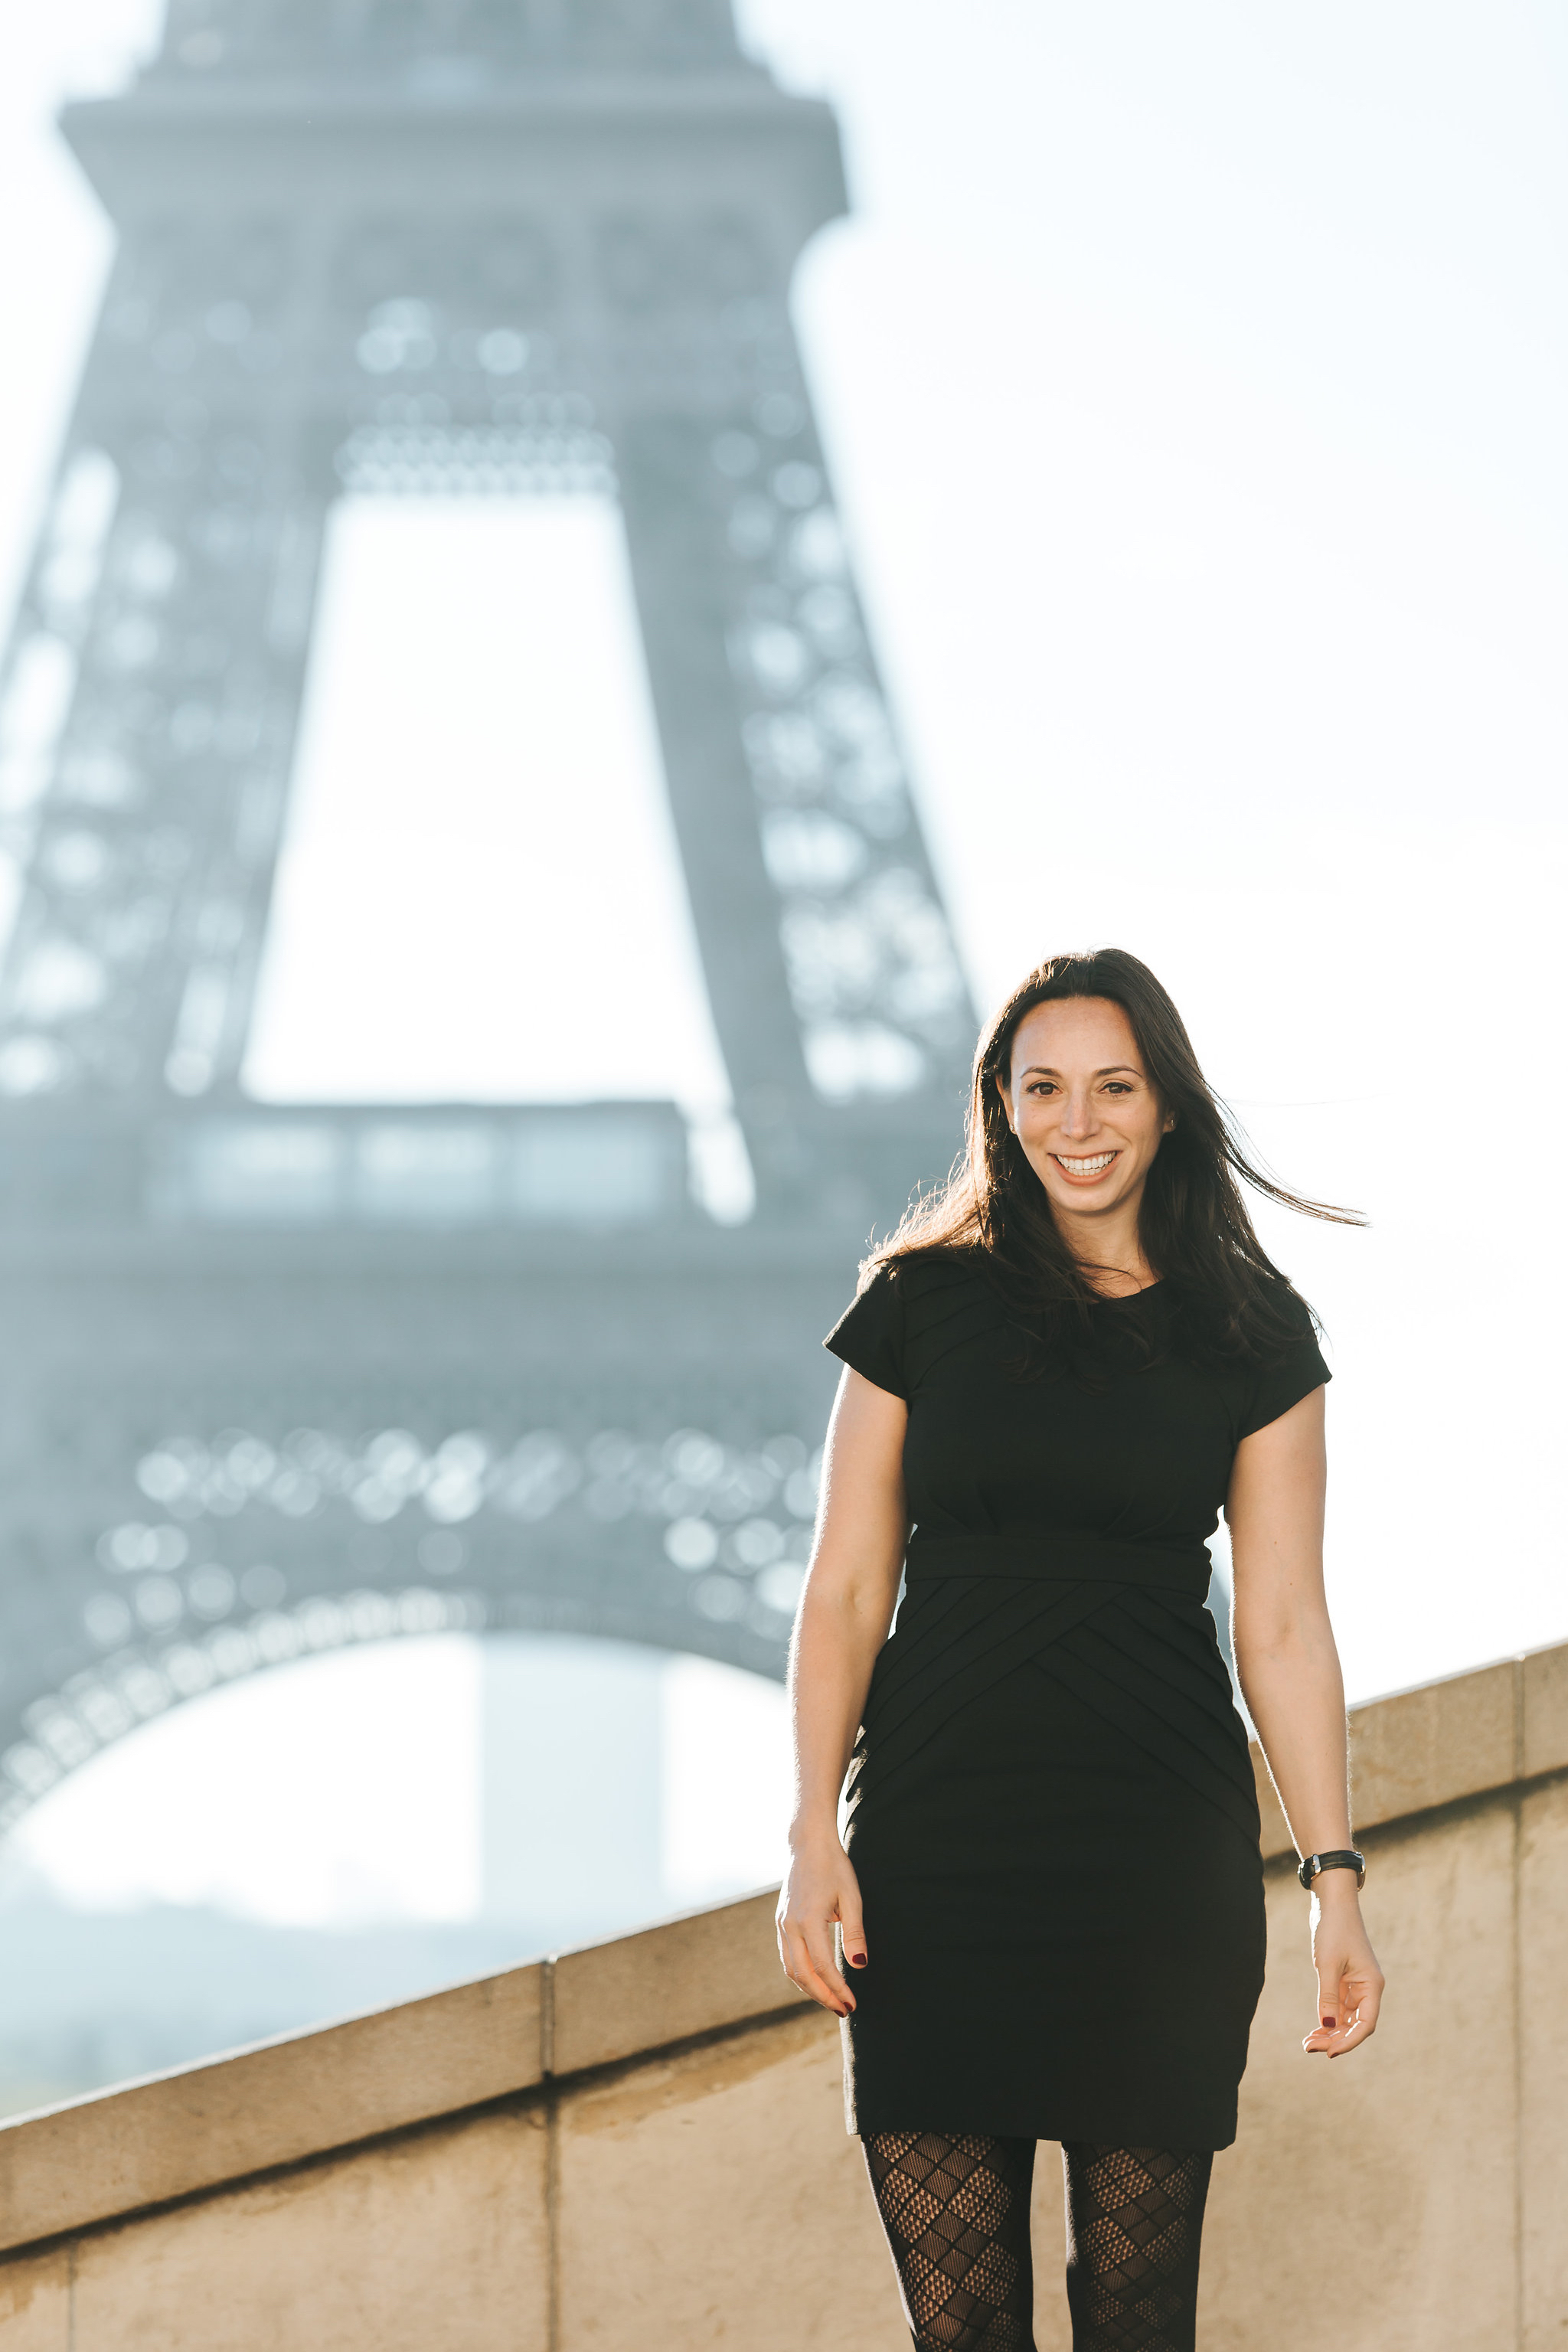 rebecca plotnick in paris founder of everyday parisian blog about paris